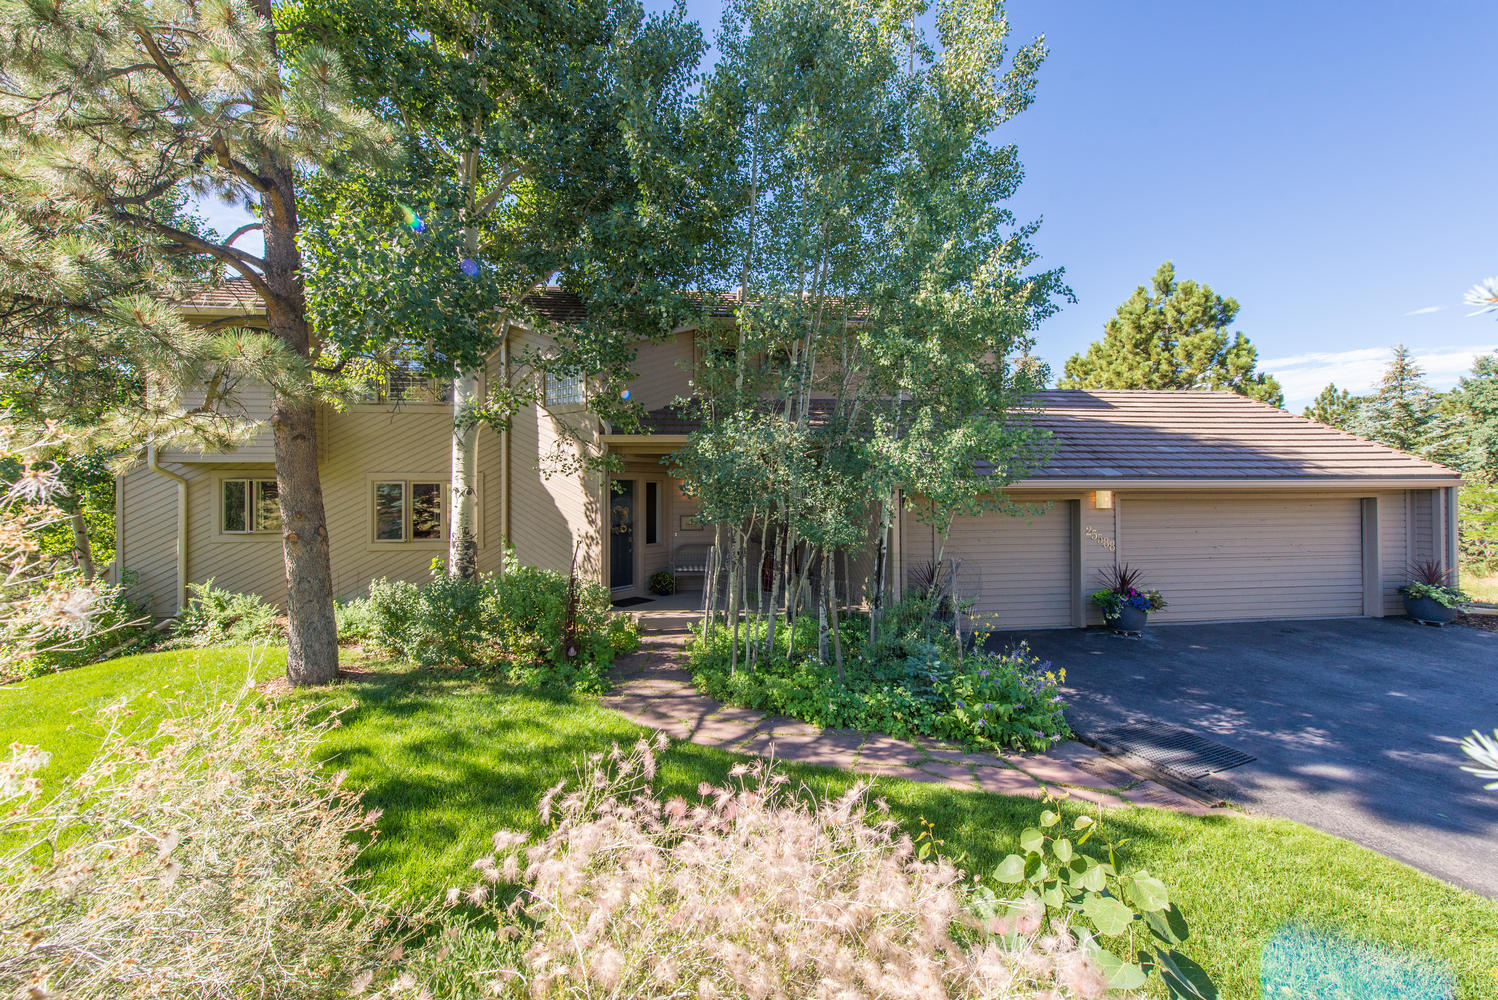 Single Family Home for Sale at Storybook Setting 25588 Foothills Drive North Golden, Colorado, 80401 United States